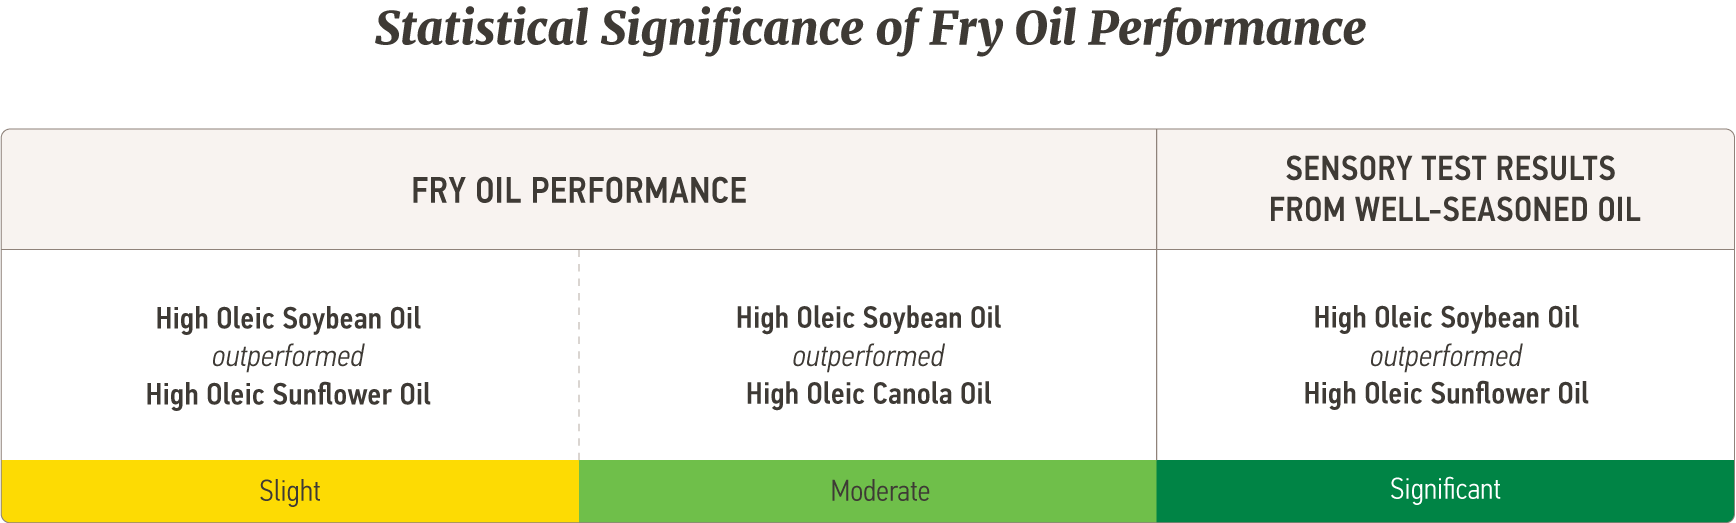 Statistical Significance of Fry Oil Performance